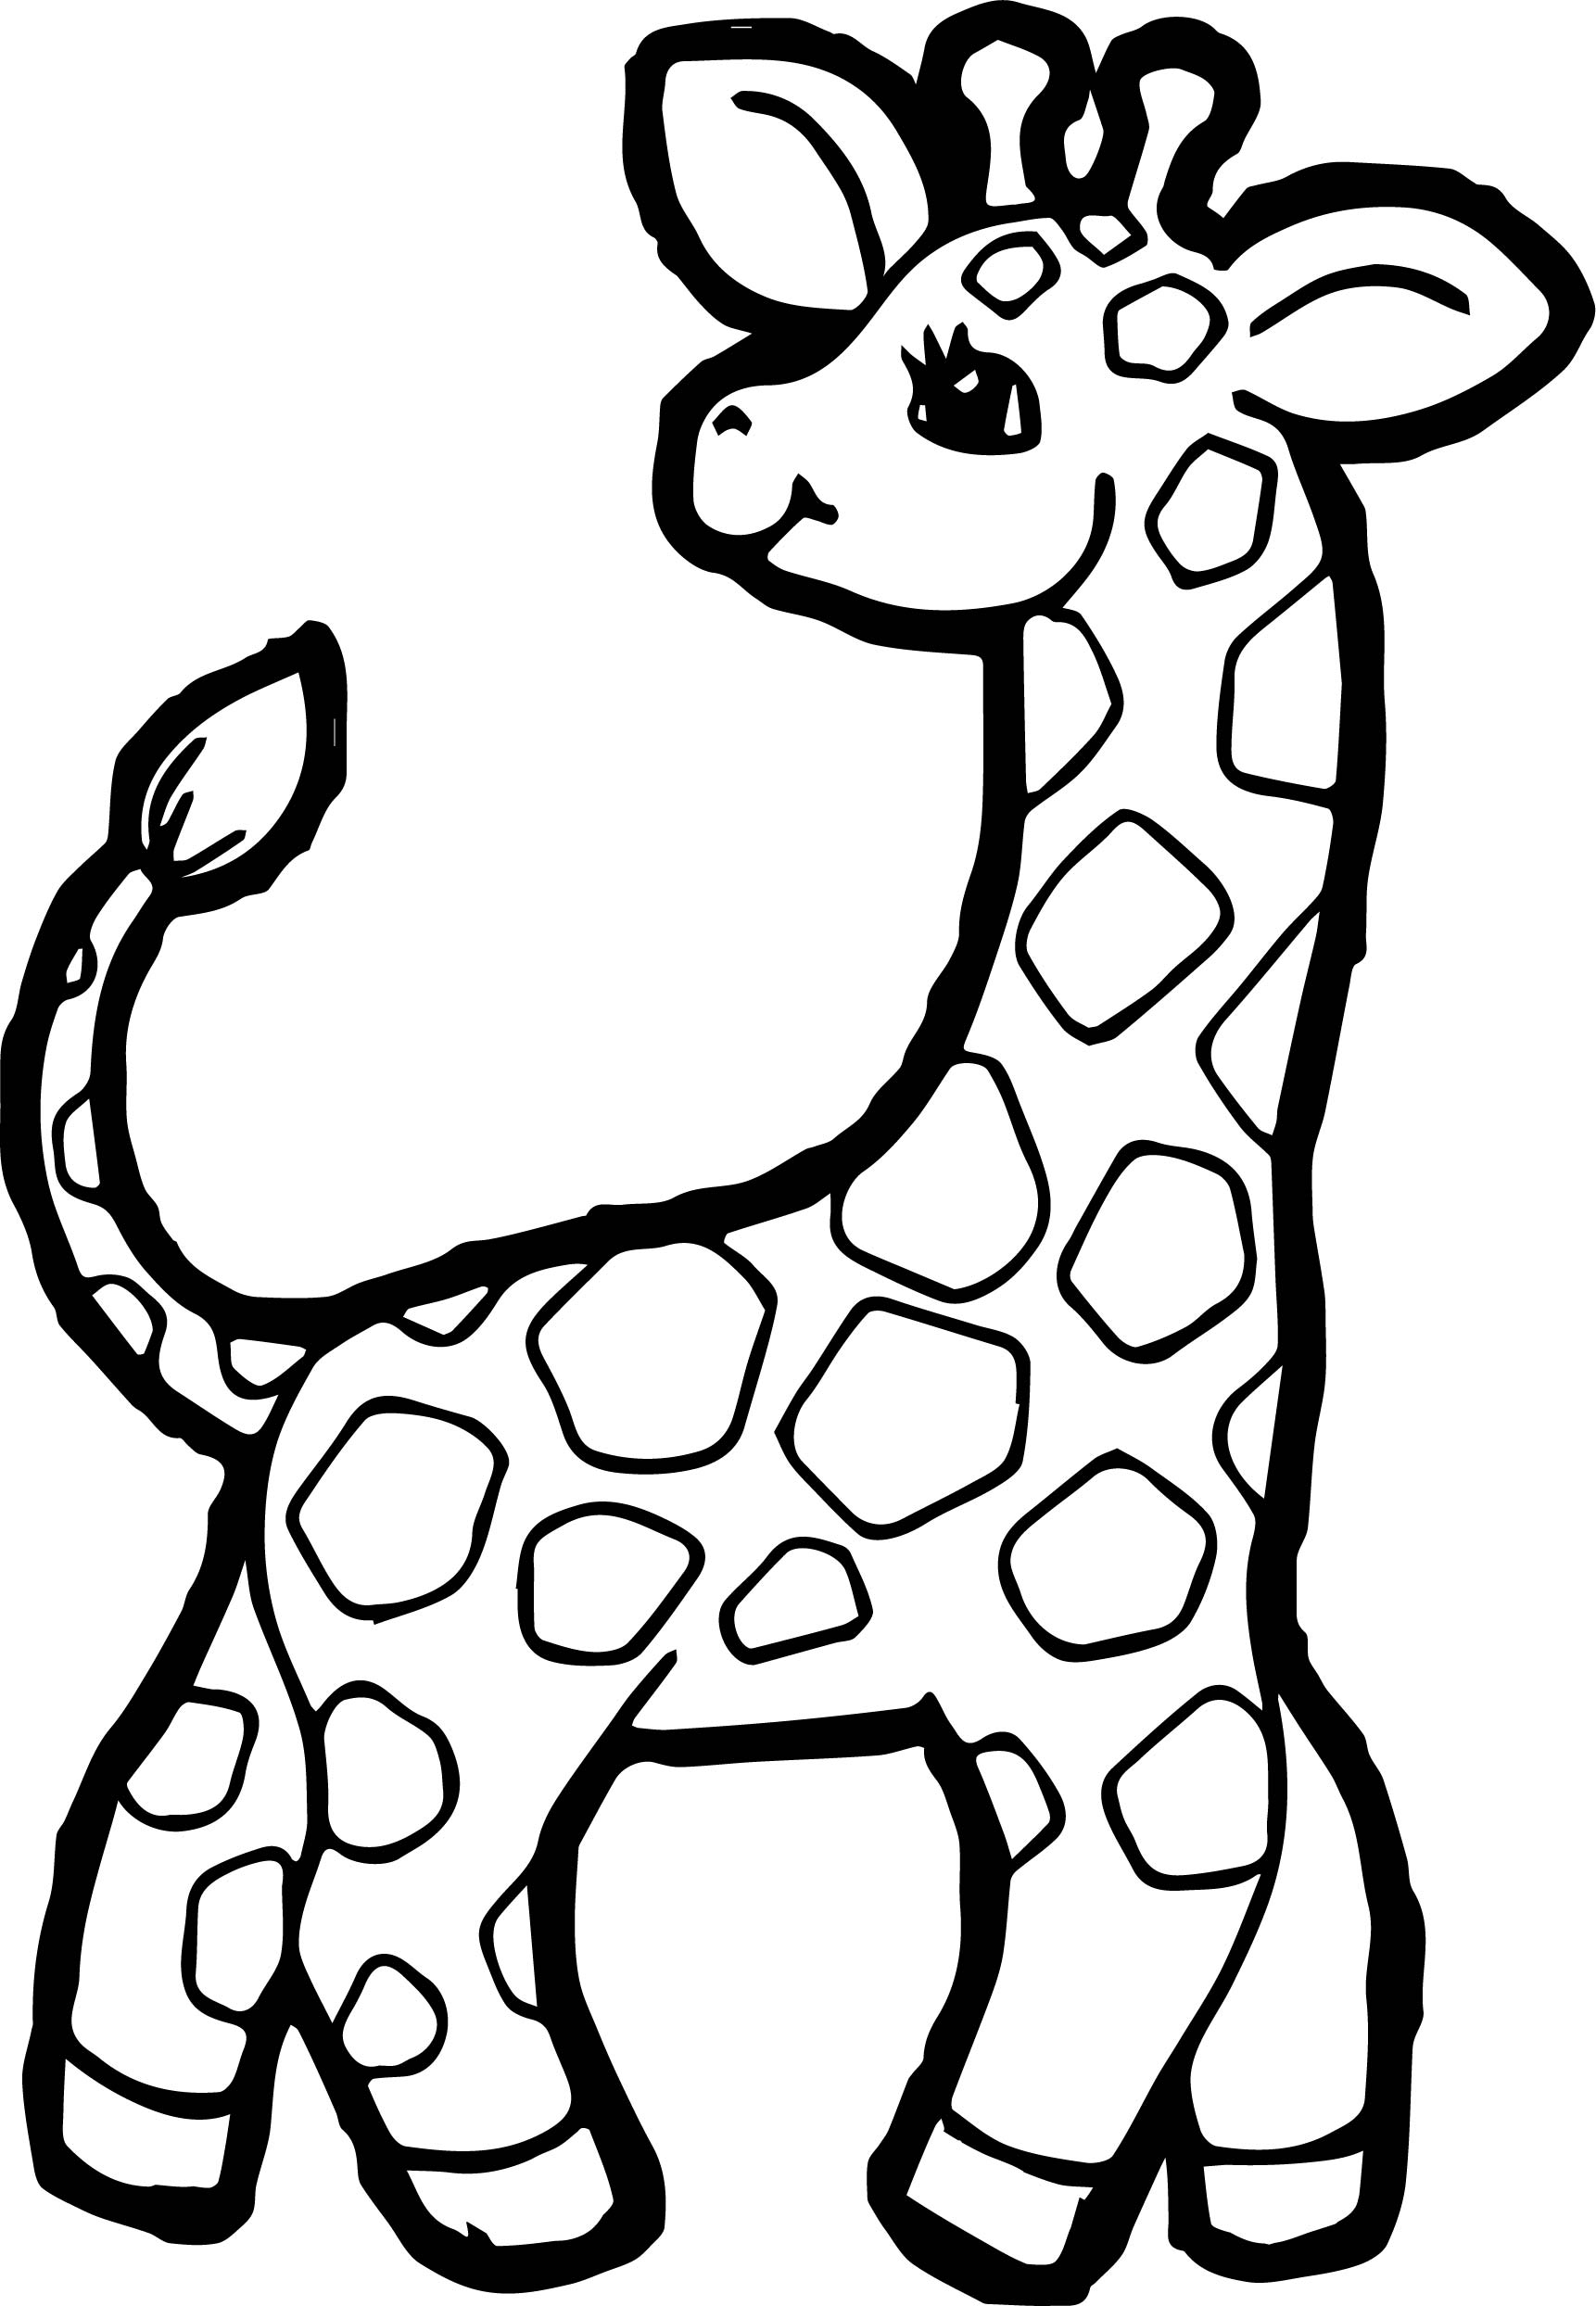 giraffes coloring pages giraffes coloring pages to download and print for free pages giraffes coloring